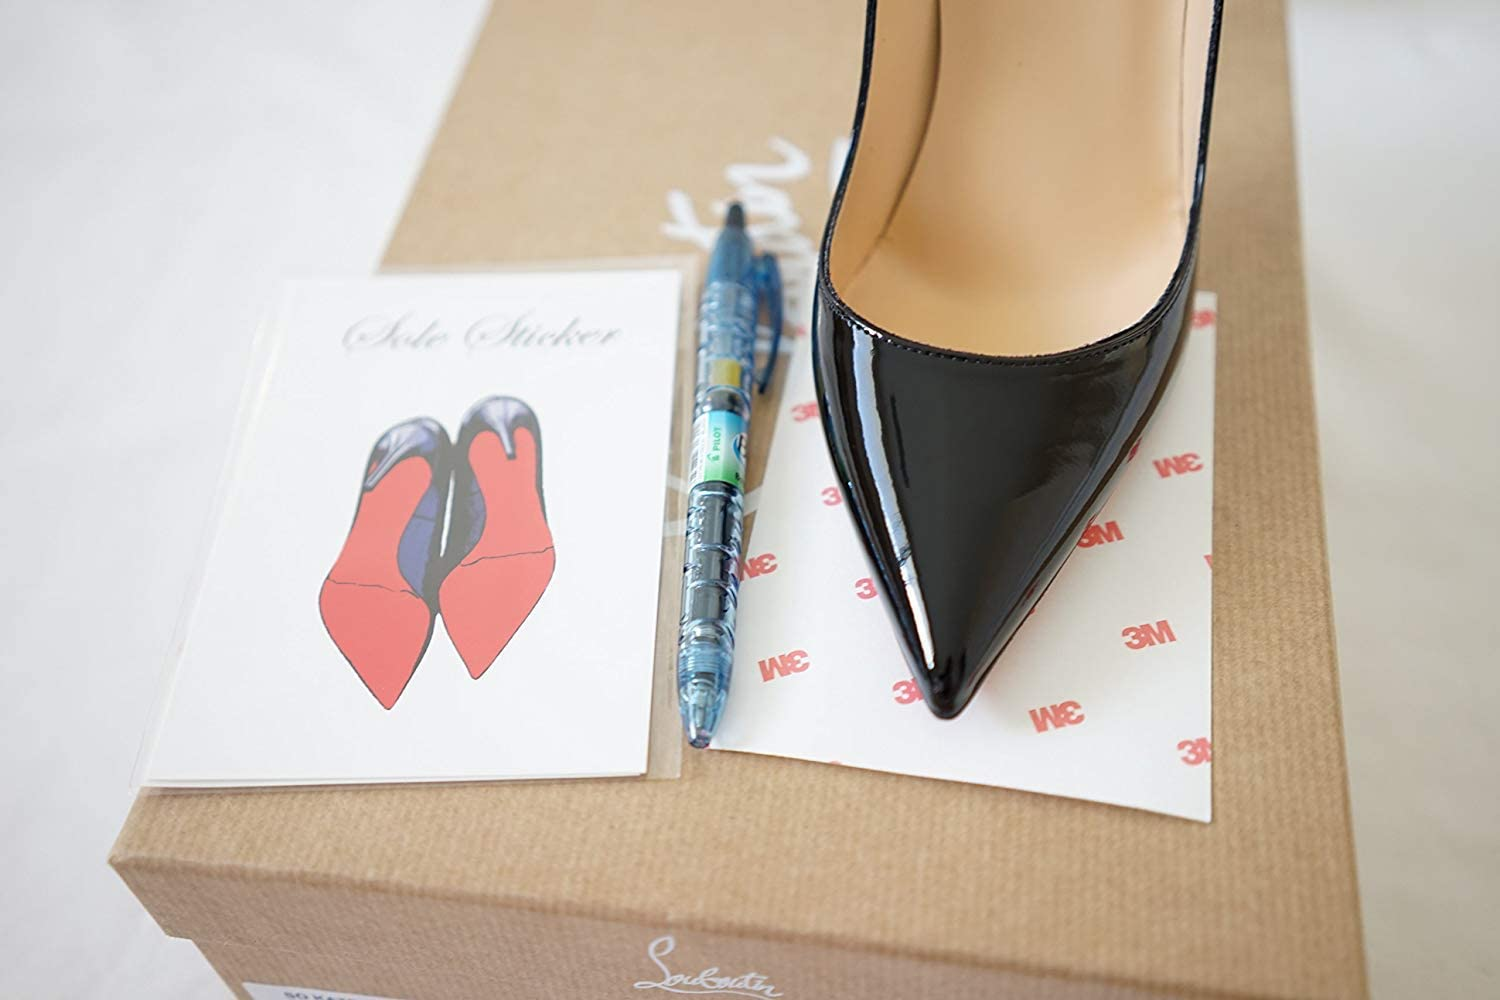 36 Best Books Worth Reading images | Christian louboutin